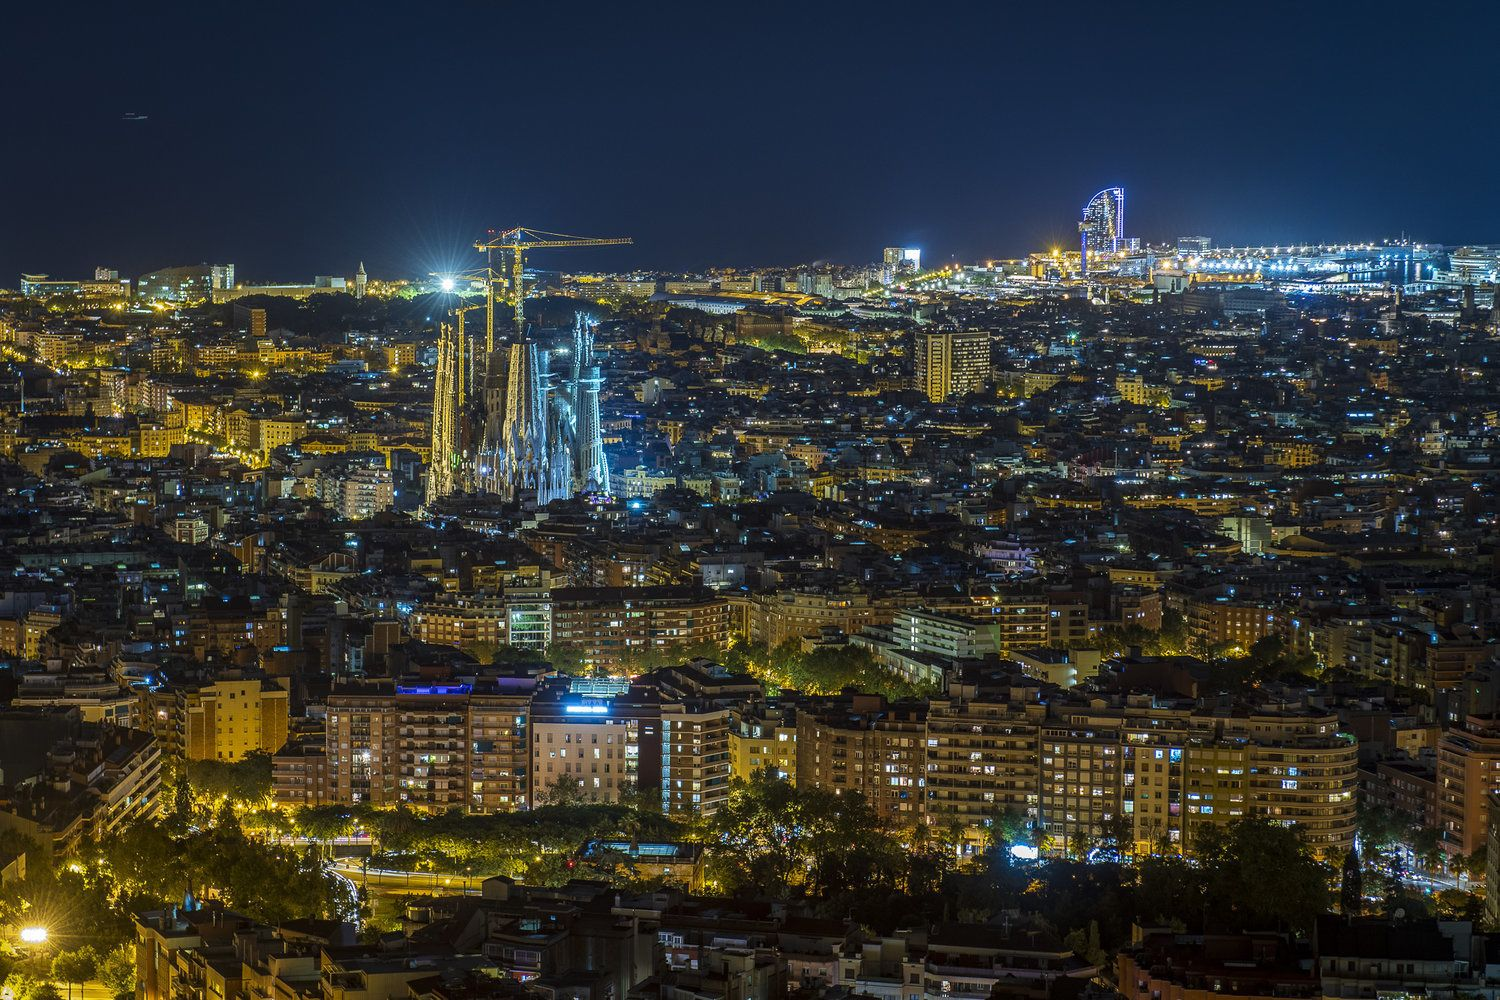 Barcelona Night Photo Tour with a professional photographer